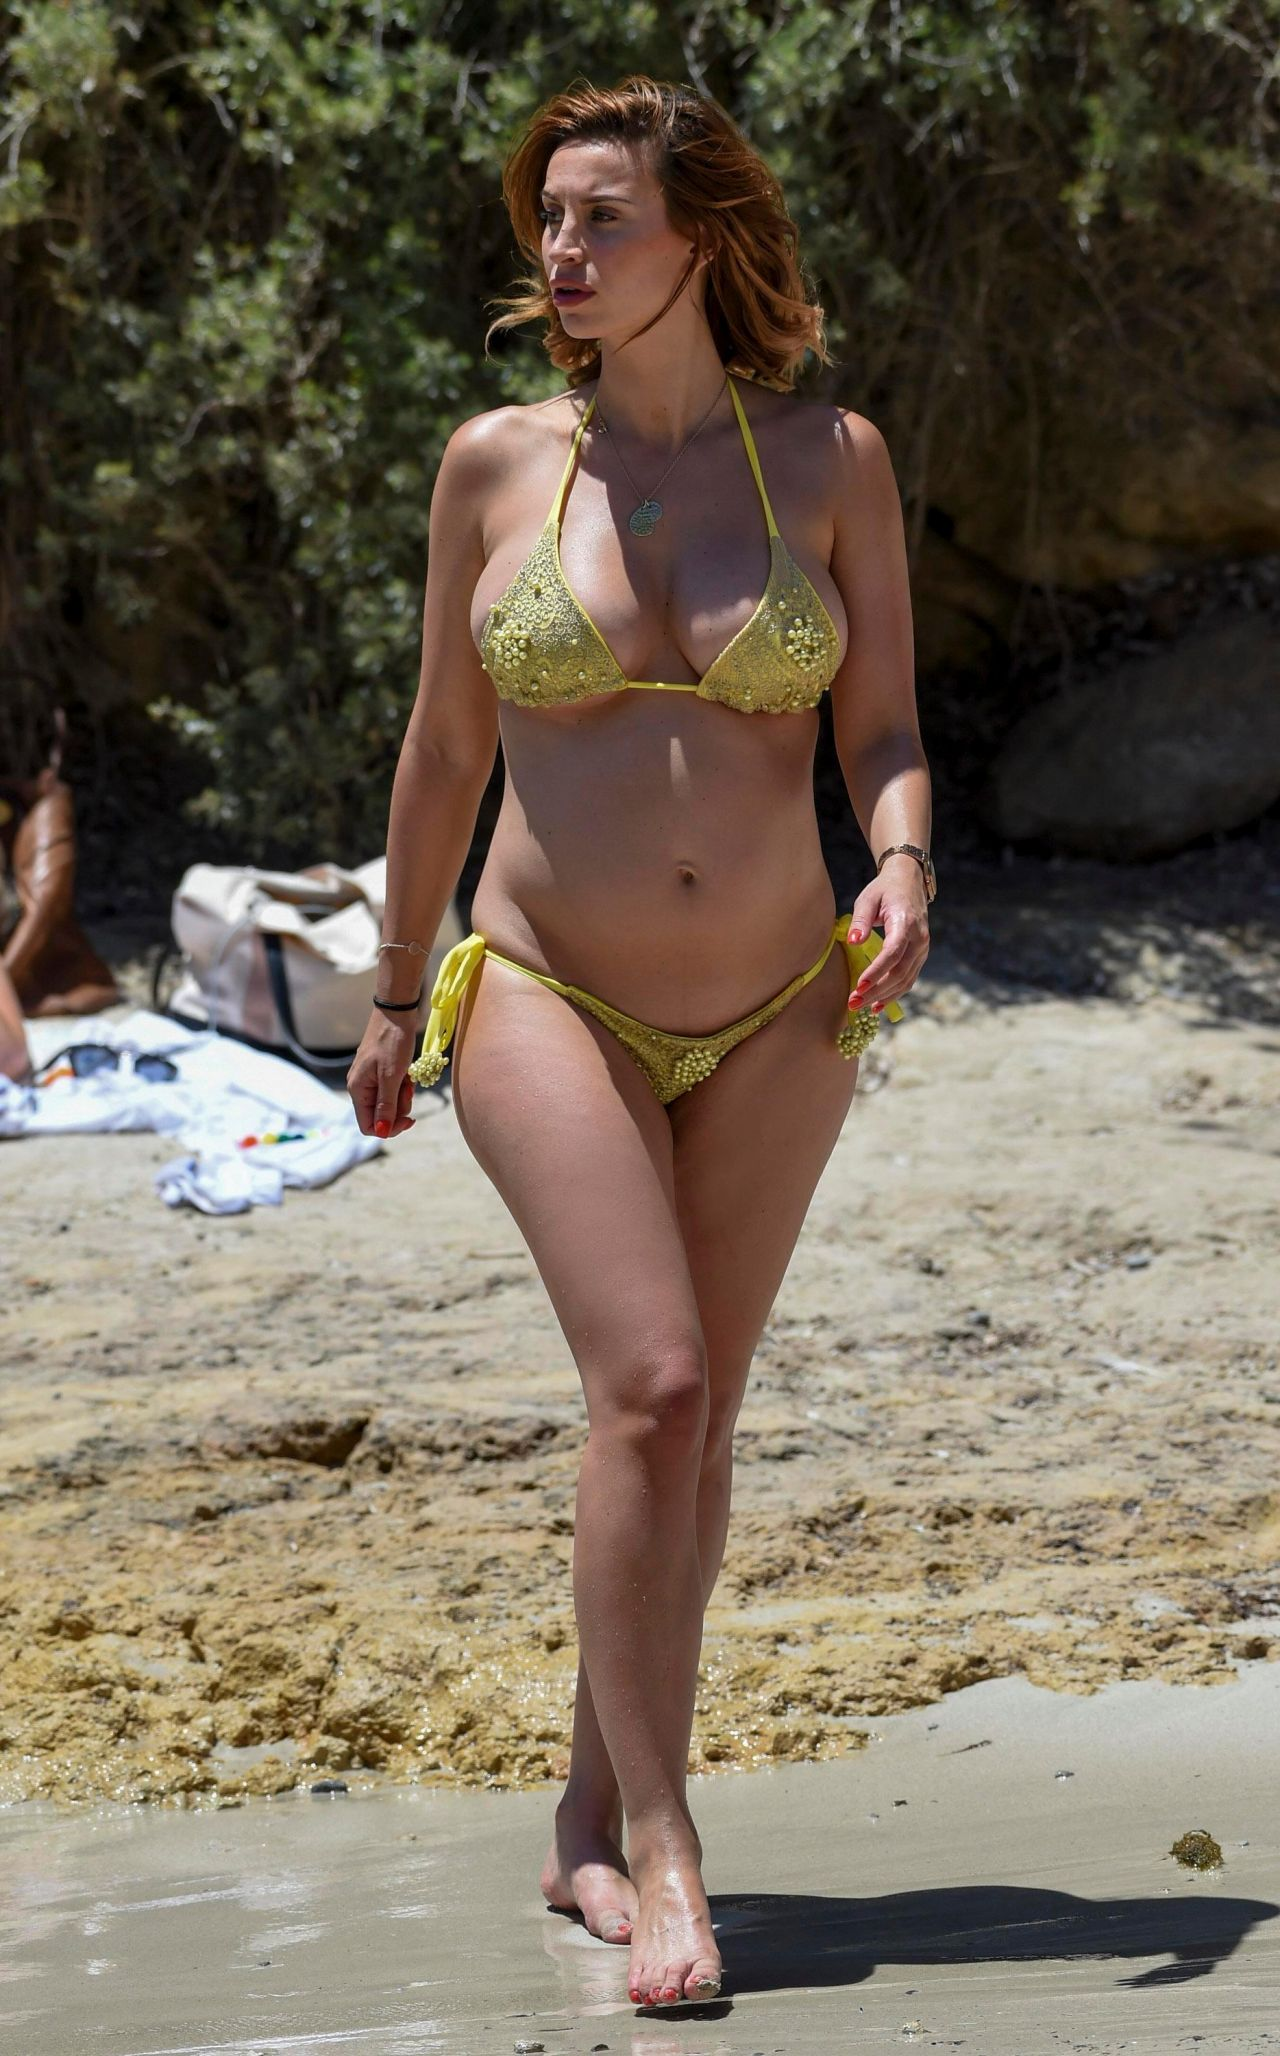 ferne-mccann-in-yellow-bikini-on-beach-in-majorca-spain-07-07-2017-8.jpg (1280×2056)